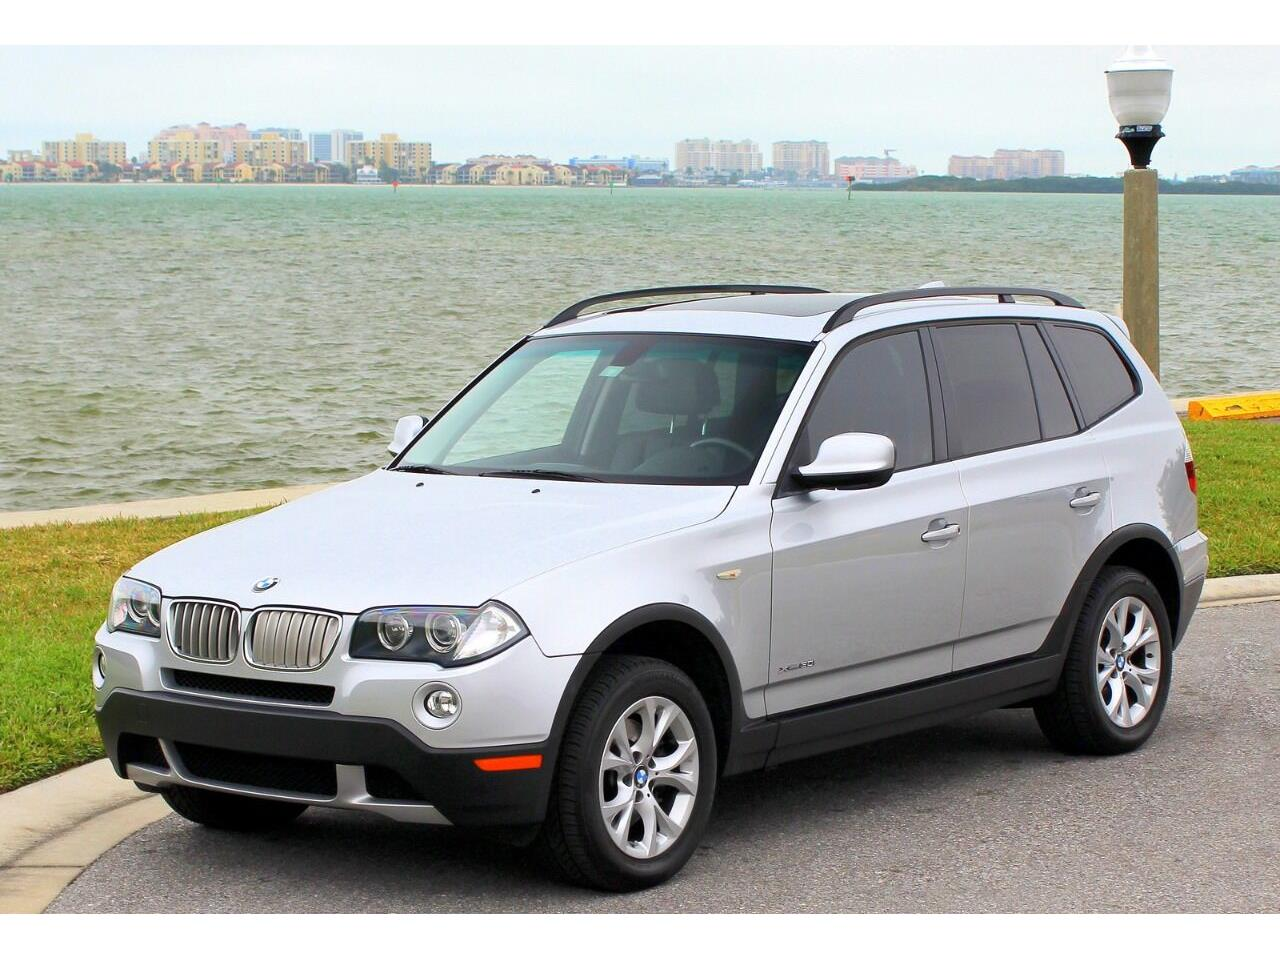 2010 BMW X3 (CC-1320132) for sale in Clearwater, Florida